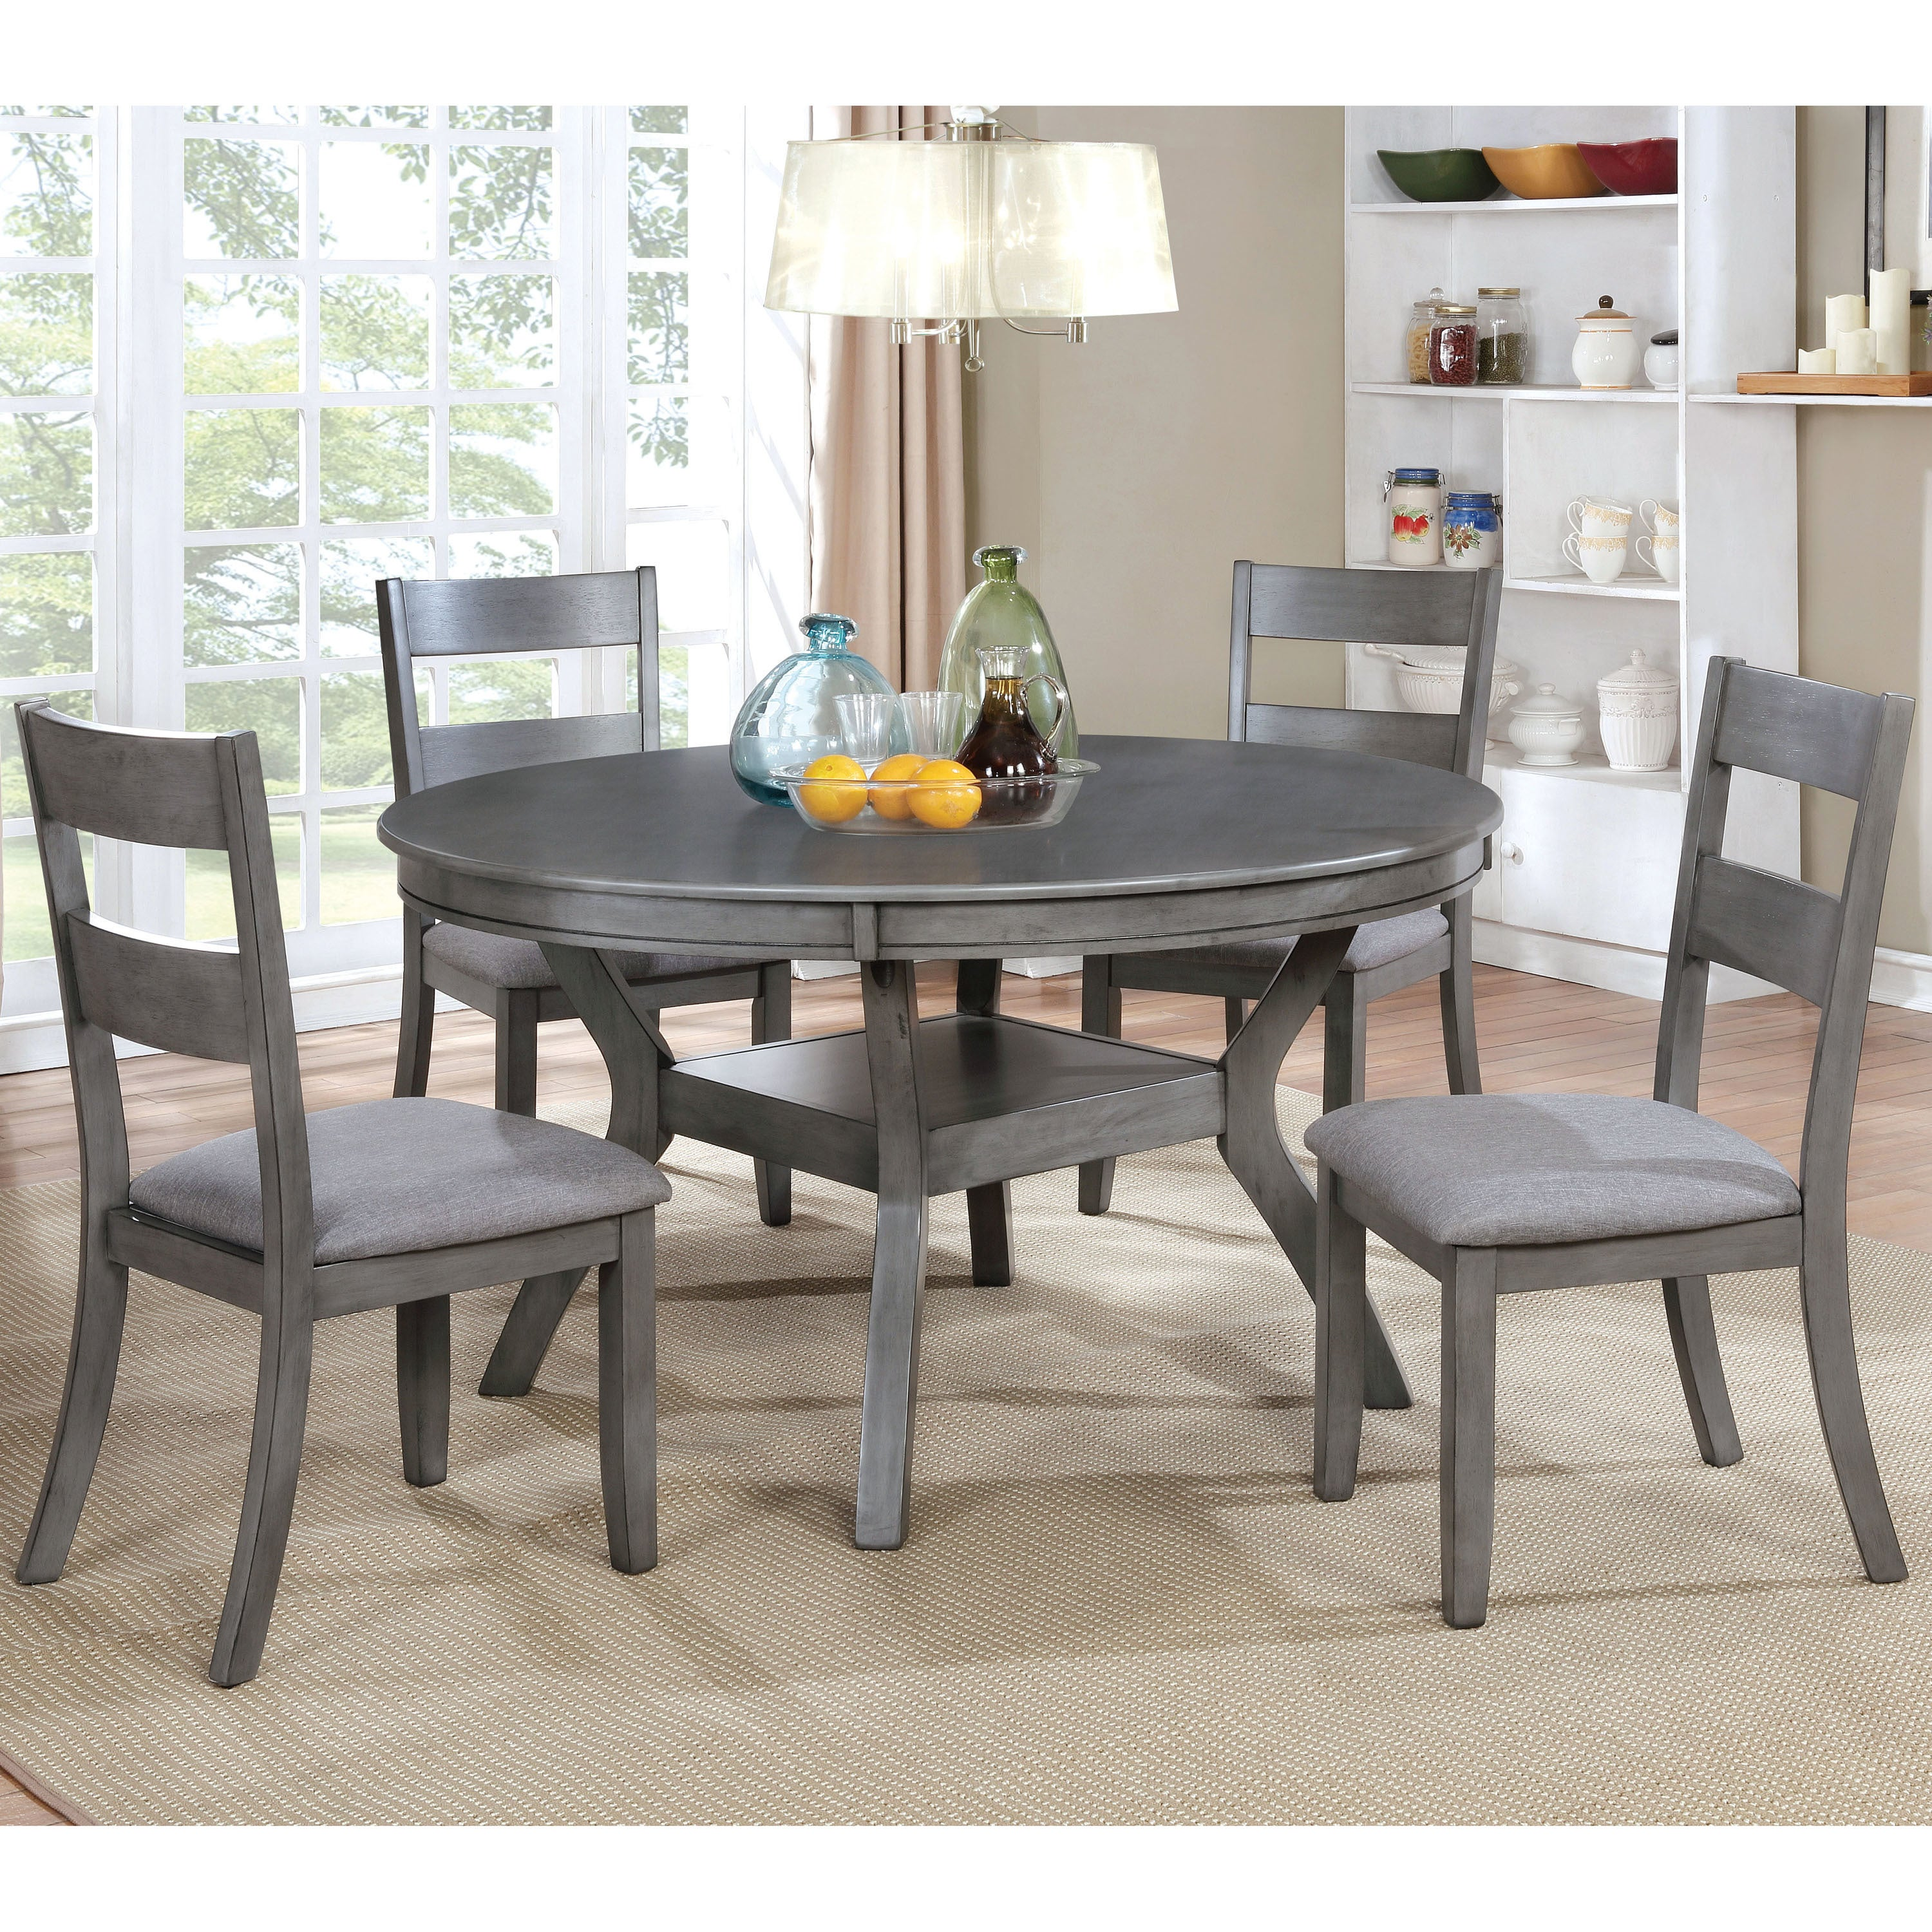 Furniture Of America Relia Transitional 54 Inch Round Dining Table On Free Shipping Today 19998656